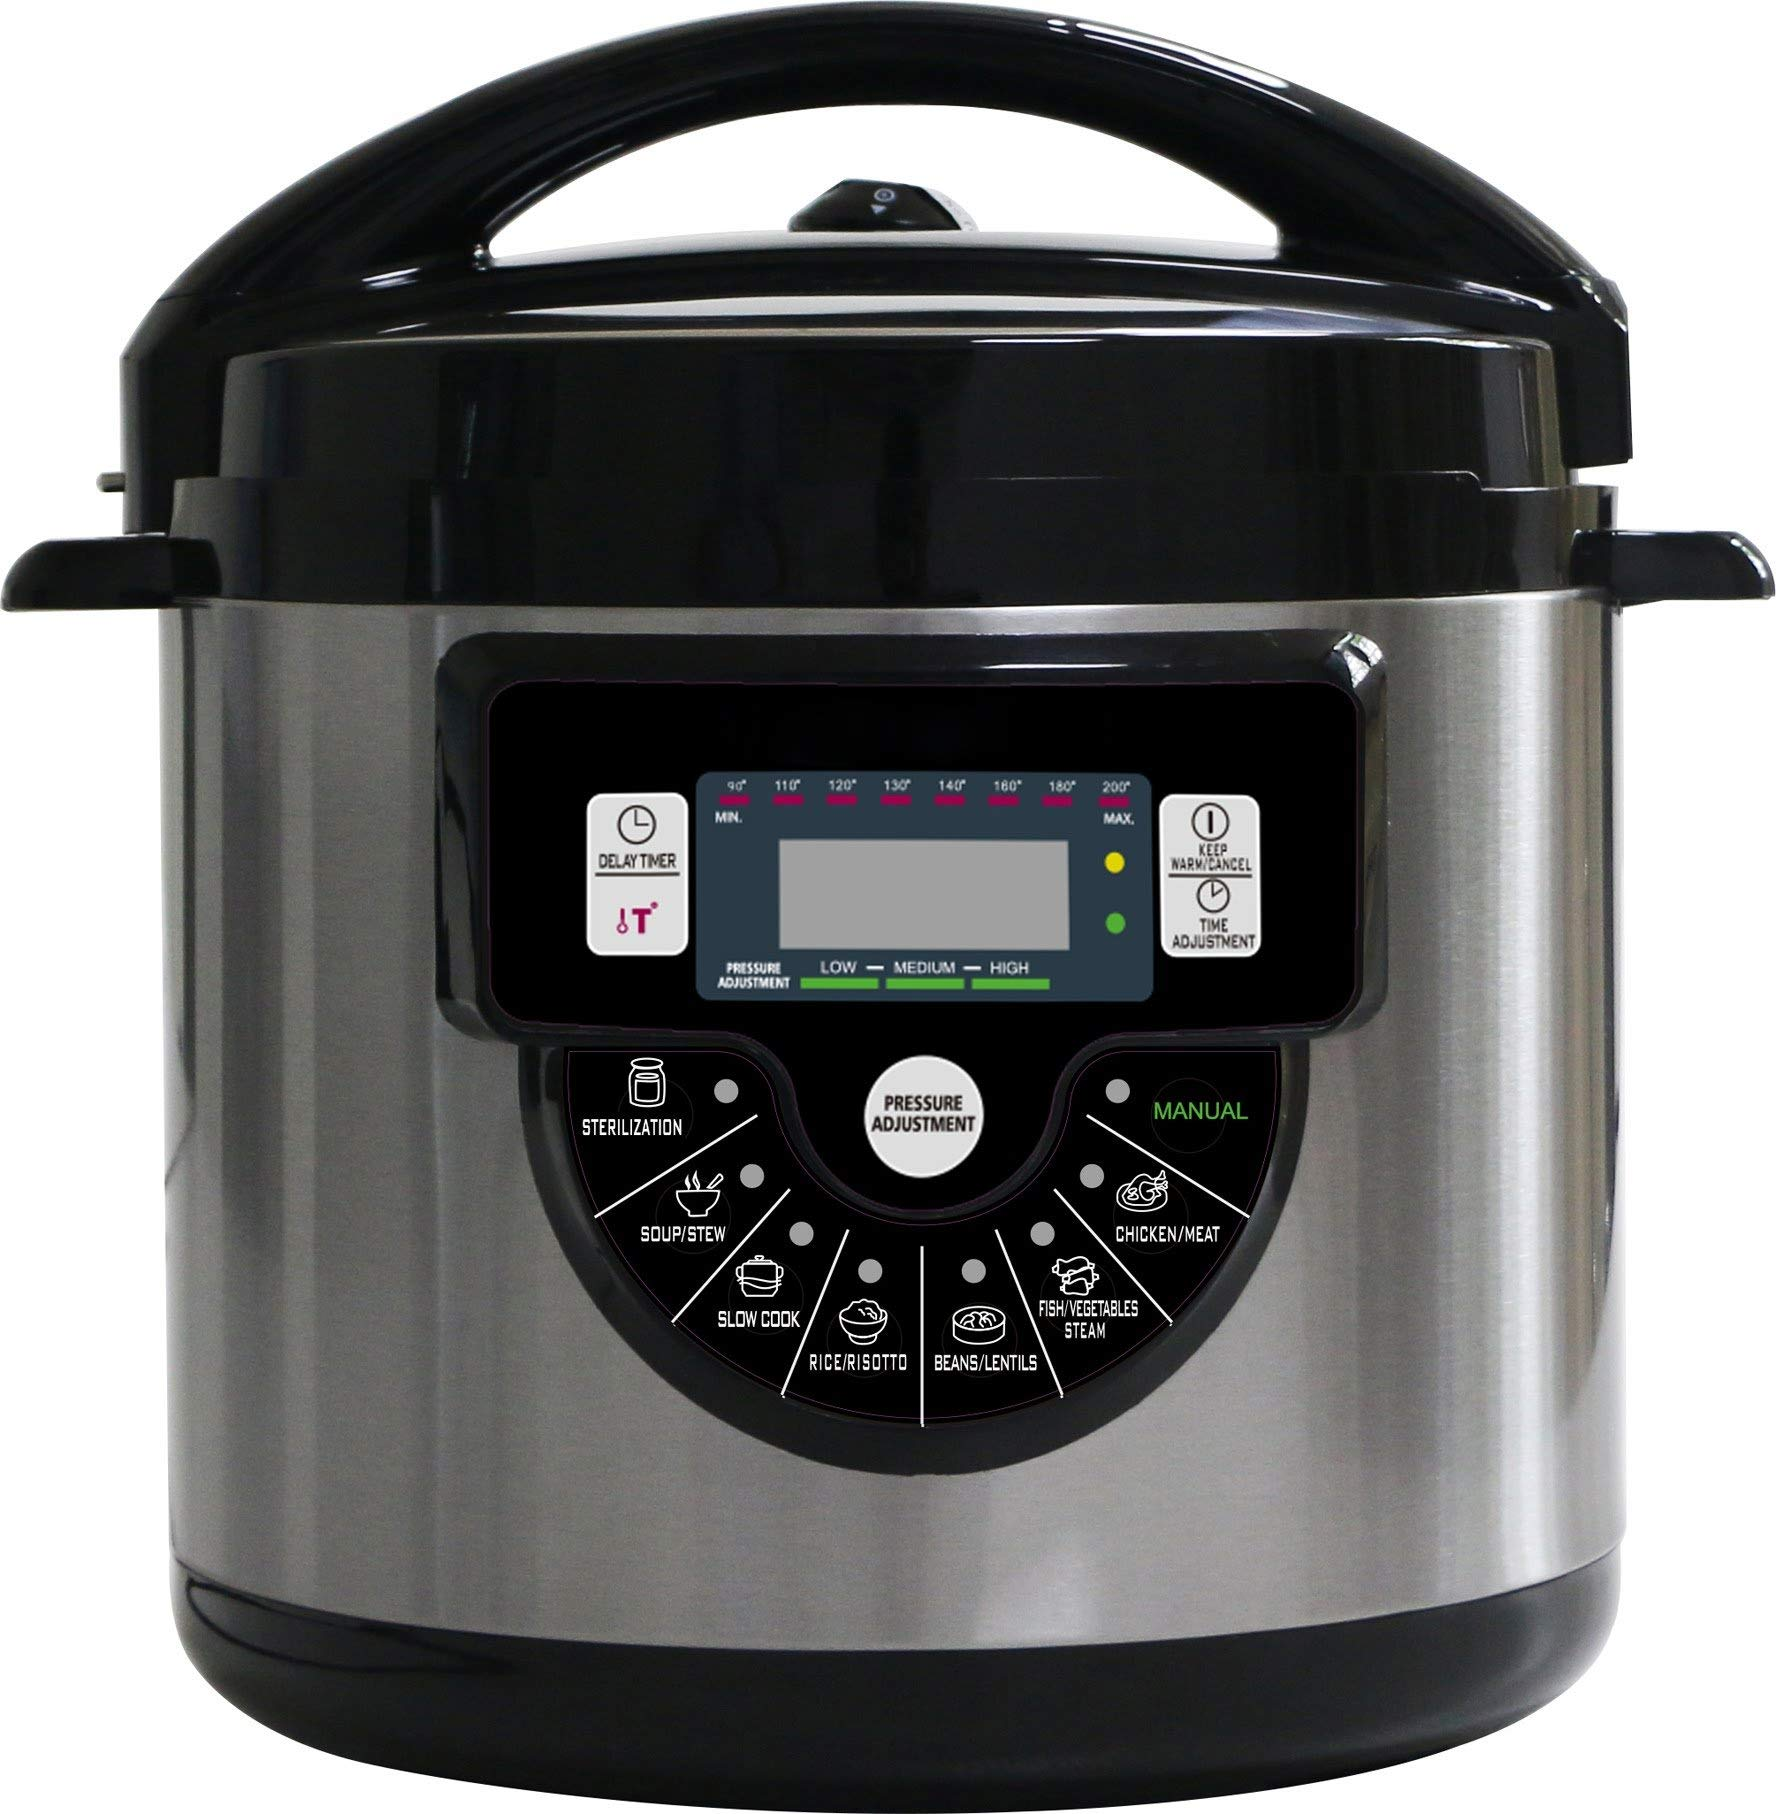 8-in-1 6Q Multi-function Pressure Cooker, Rice Cooker, Slow Cooker, Steamer, and Warmer with Accessories